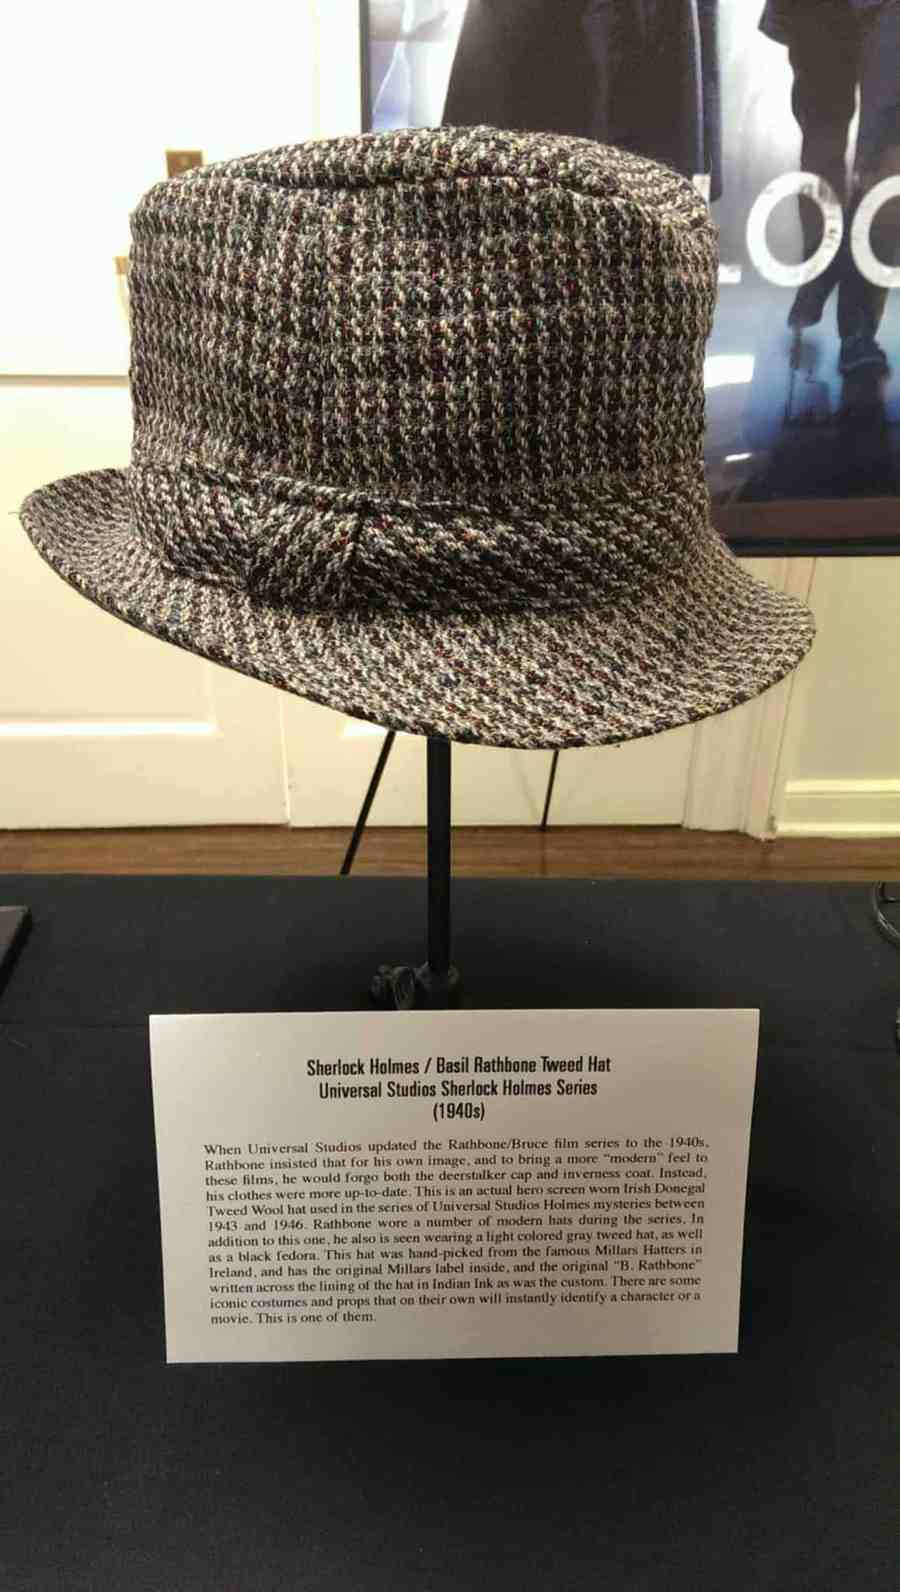 Sherlock Holmes hat for Basil Rathbone, in the updated 1940s Universal series. Irish Donegal Tweed Wool hat.